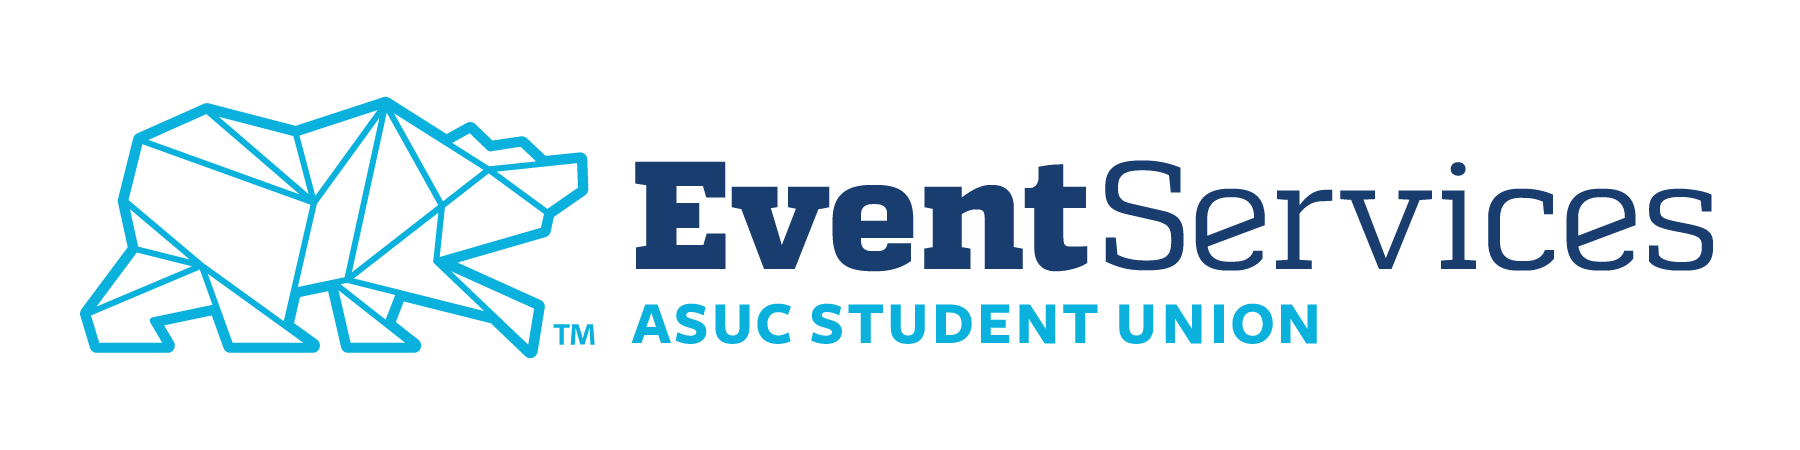 Download event services logo Horizontal in color